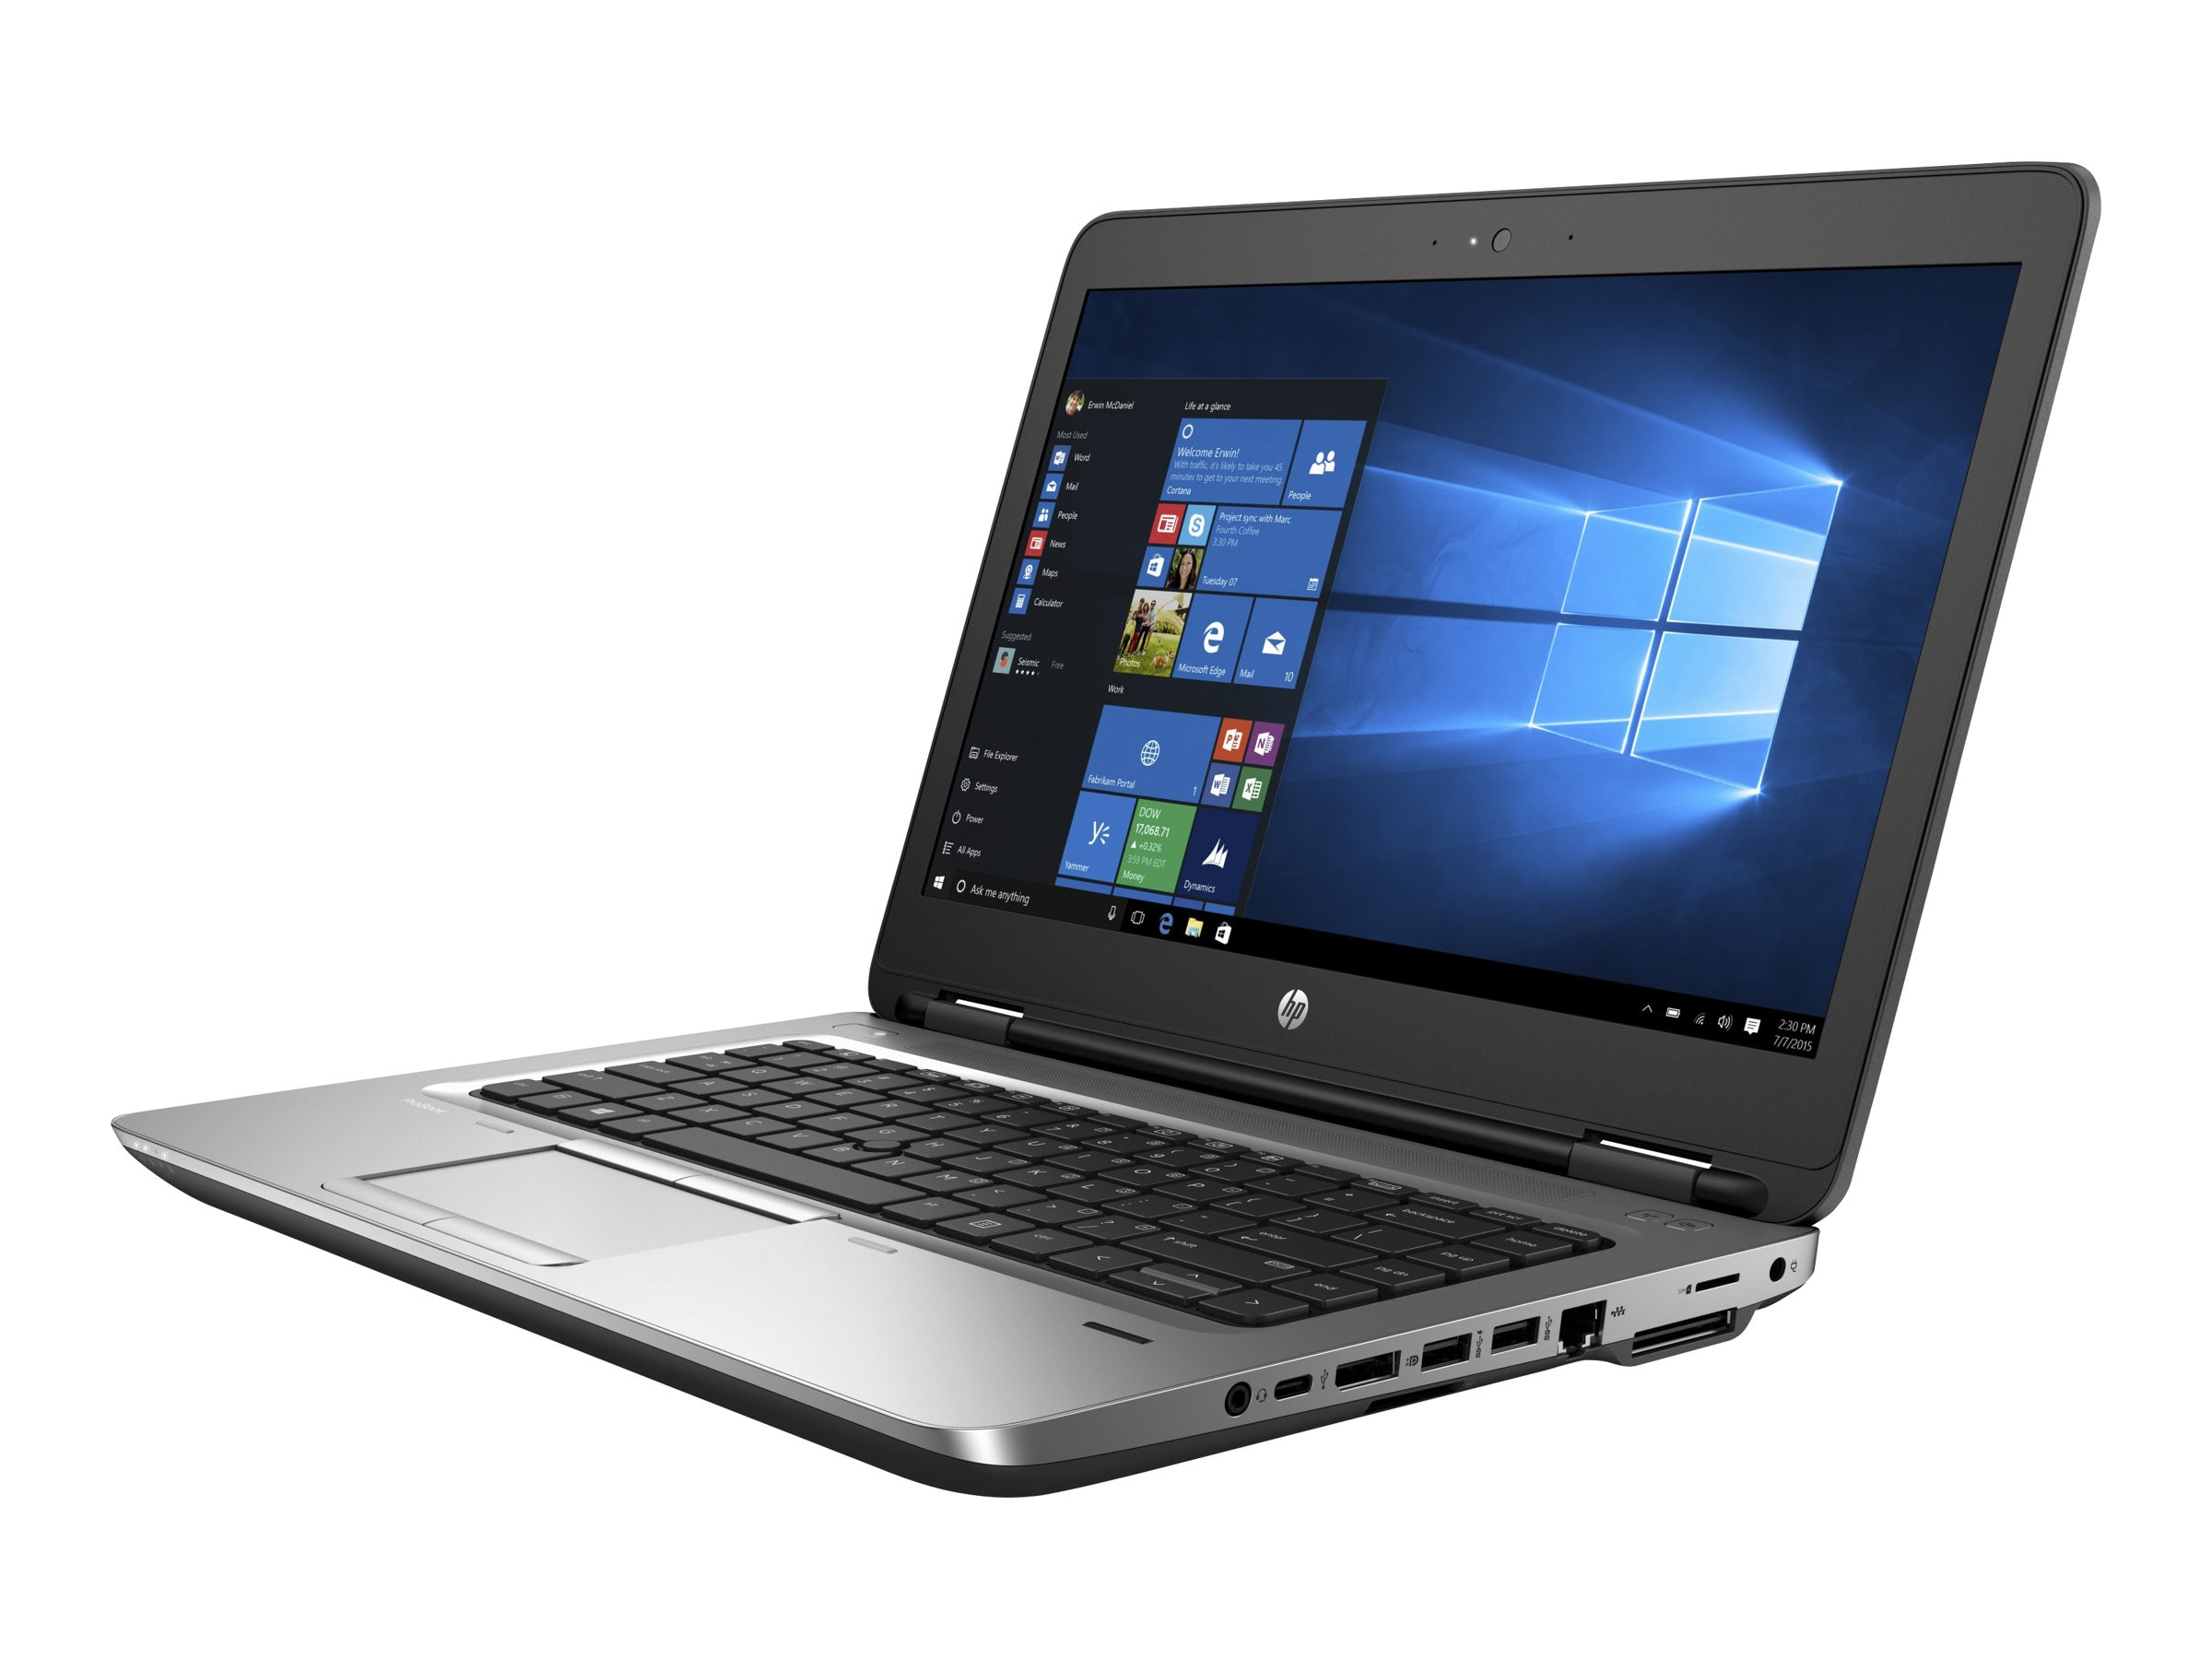 HP ProBook 640 G2 2.3GHz Core i5 14in display